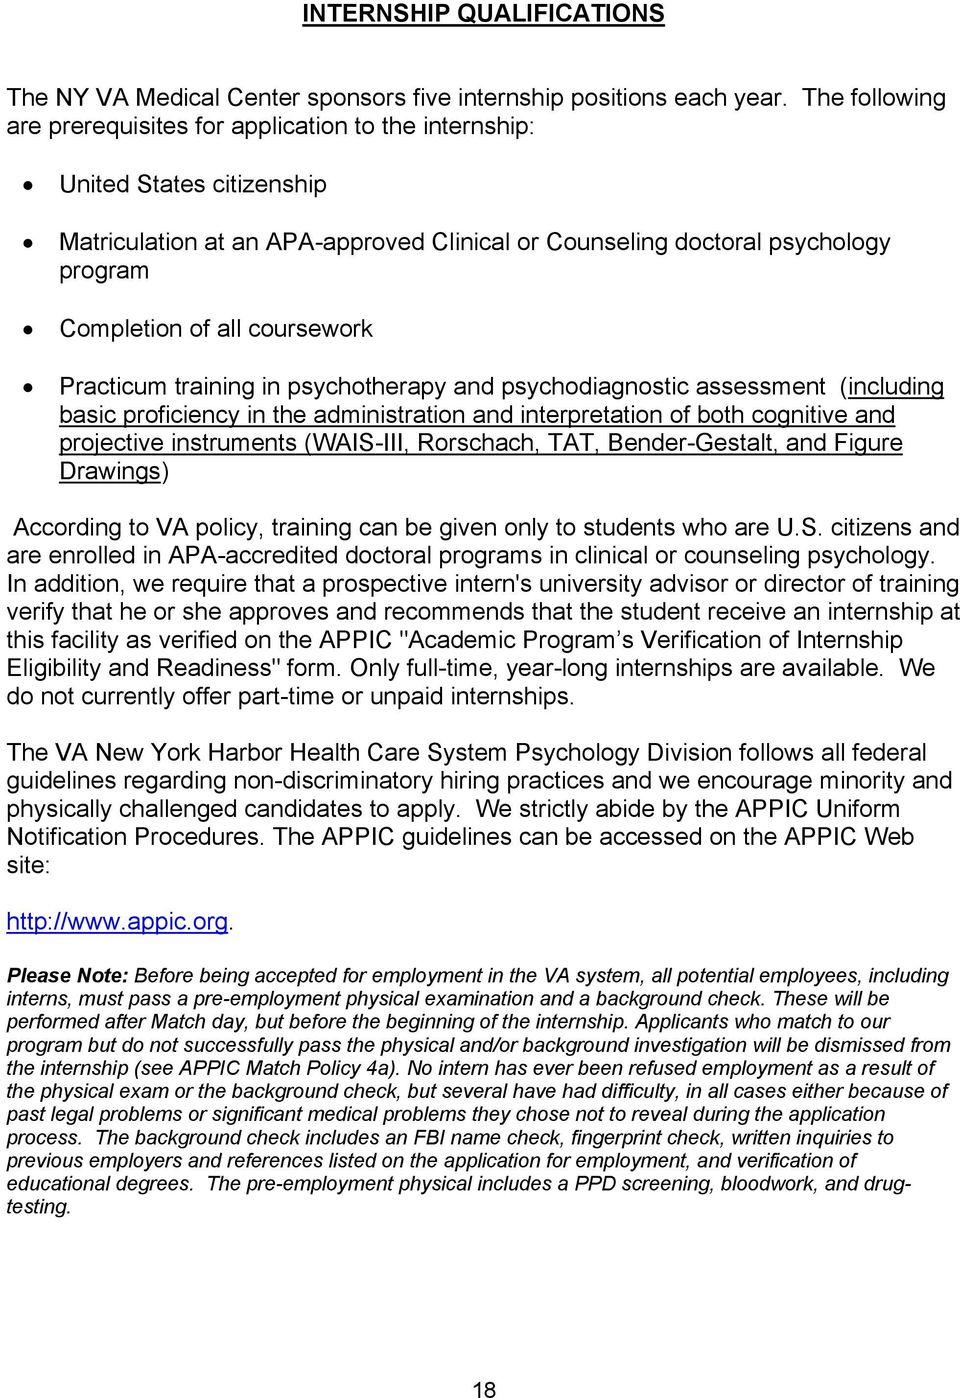 coursework Practicum training in psychotherapy and psychodiagnostic assessment (including basic proficiency in the administration and interpretation of both cognitive and projective instruments